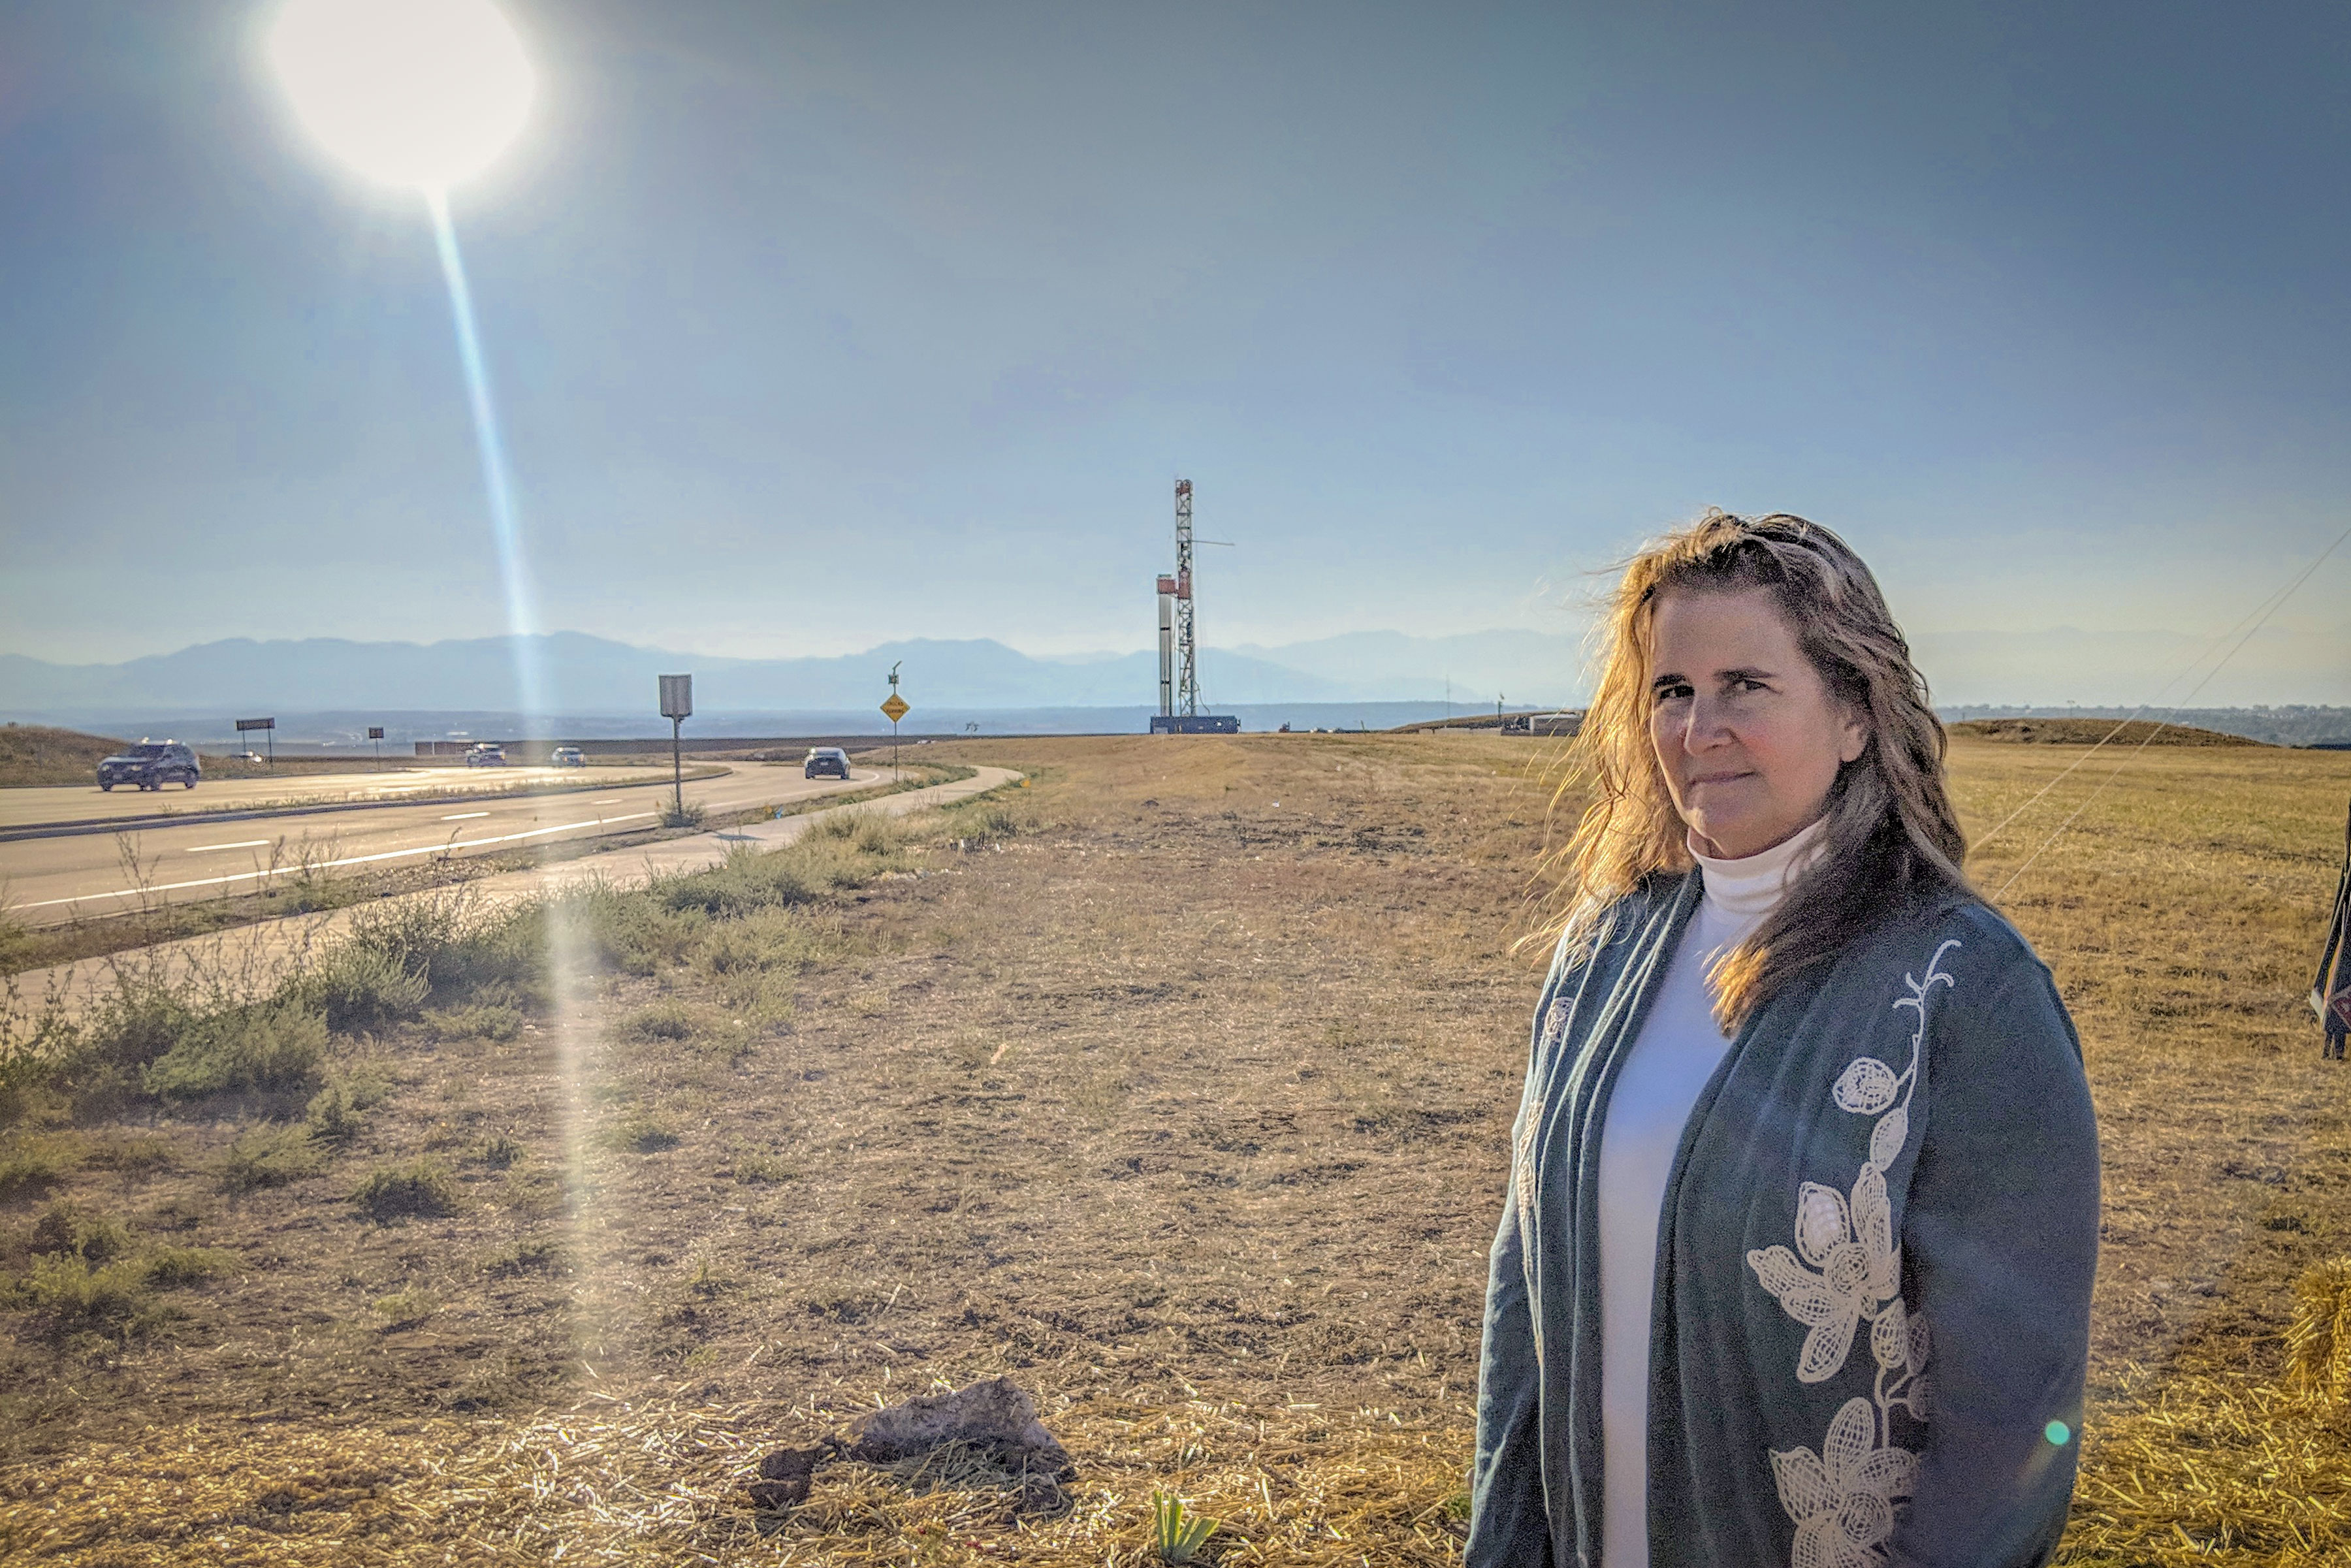 Democratic U.S. Sen. Candidate Diana Bray stands in front of a controversial drilling project n Broomfield, Colo.